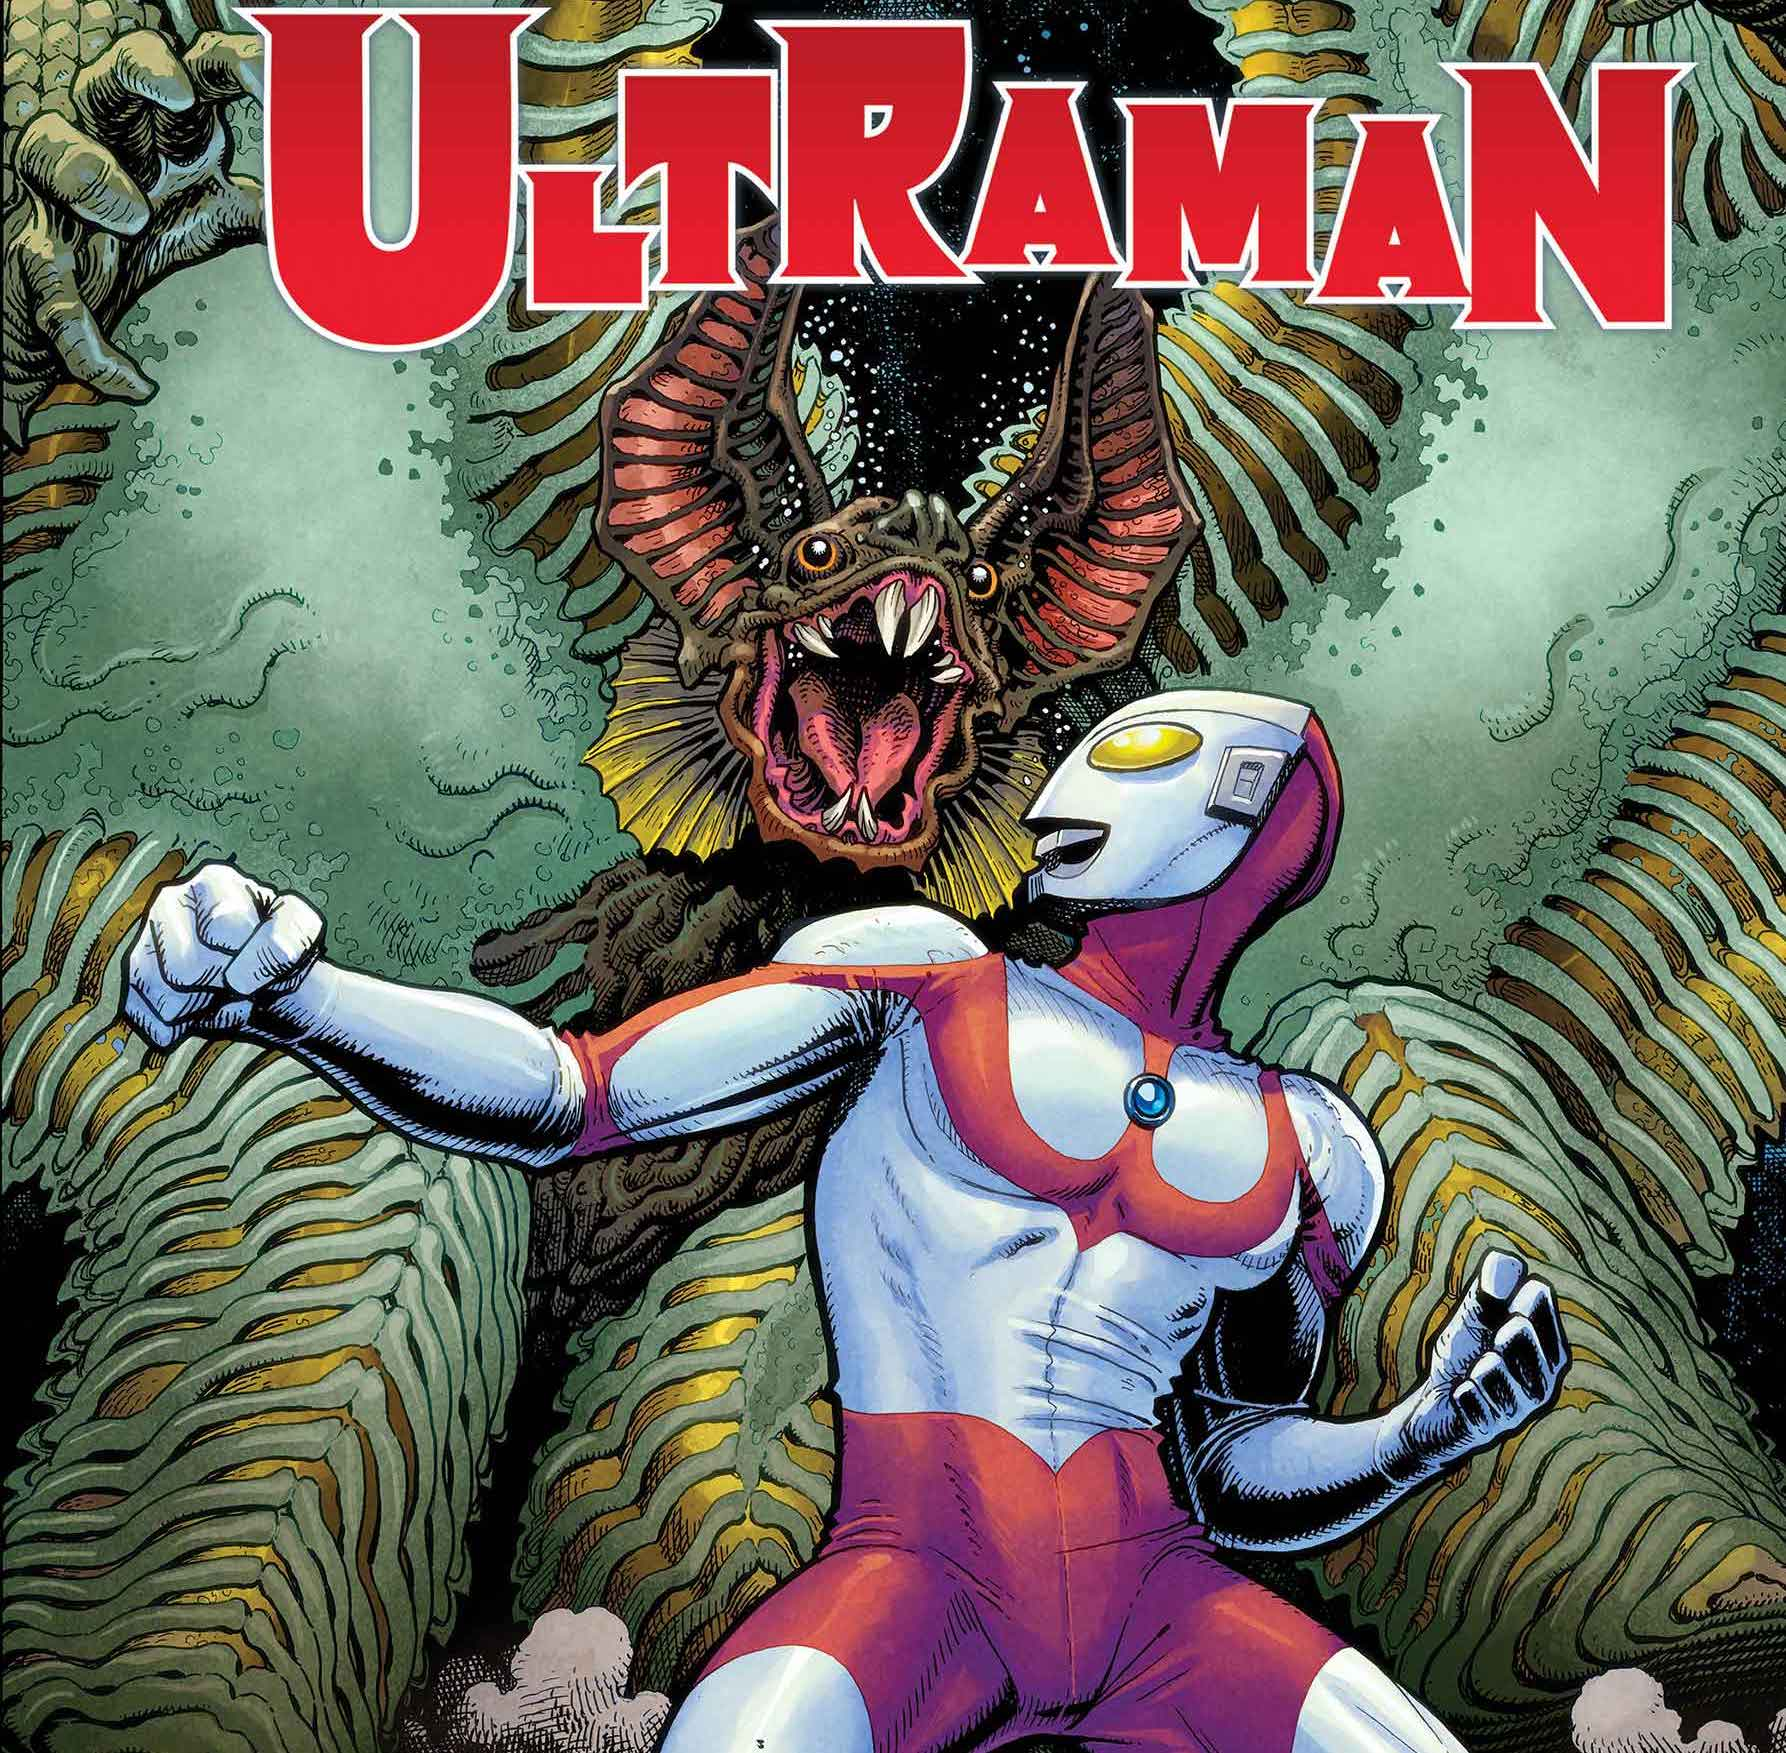 Marvel First Look: The Trials of Ultraman #1 - Out March 17